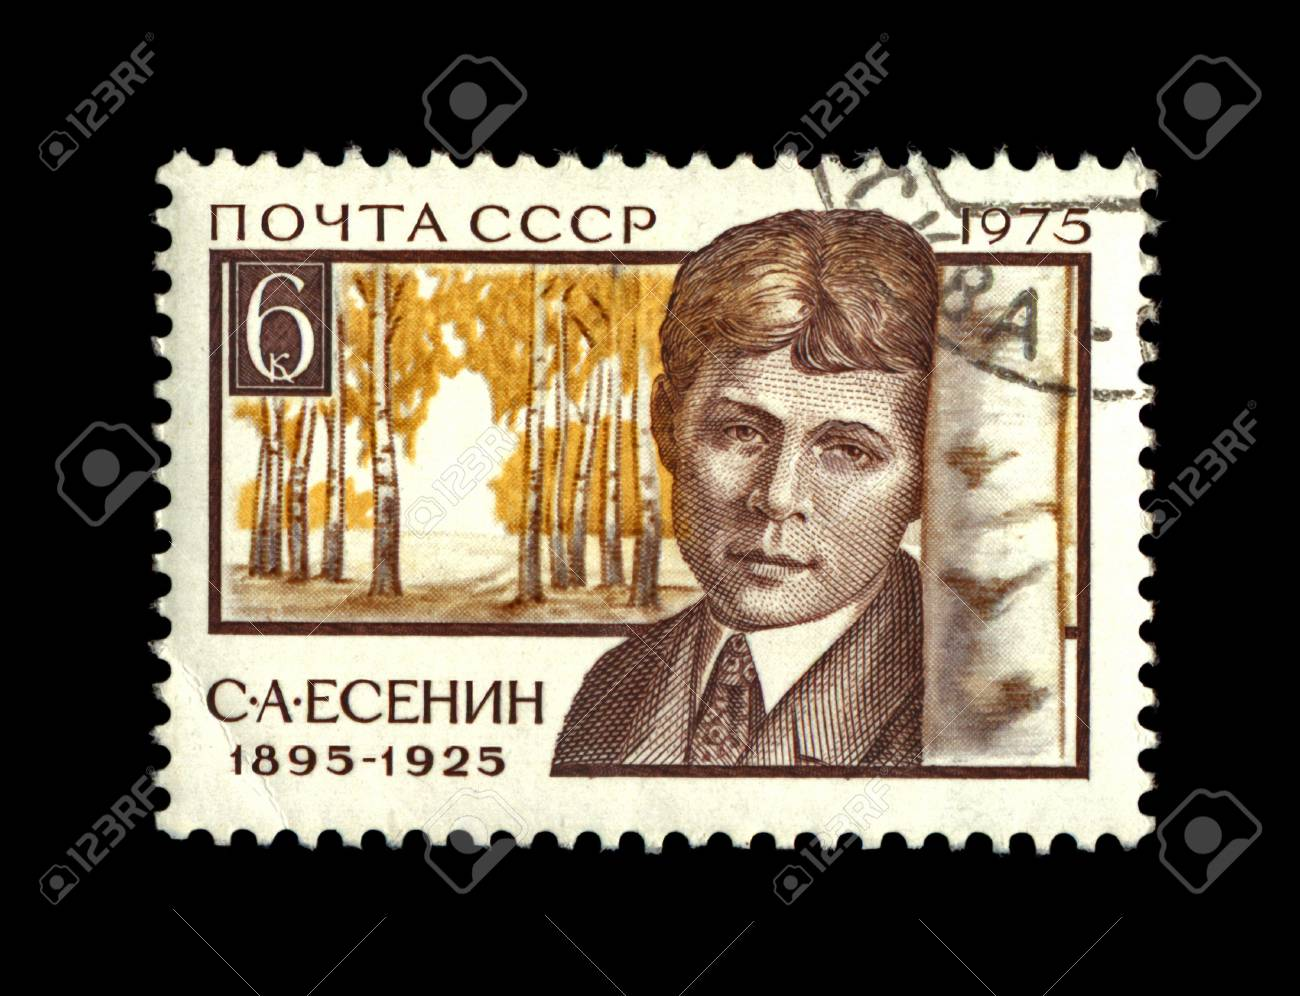 1975 in the USSR 8